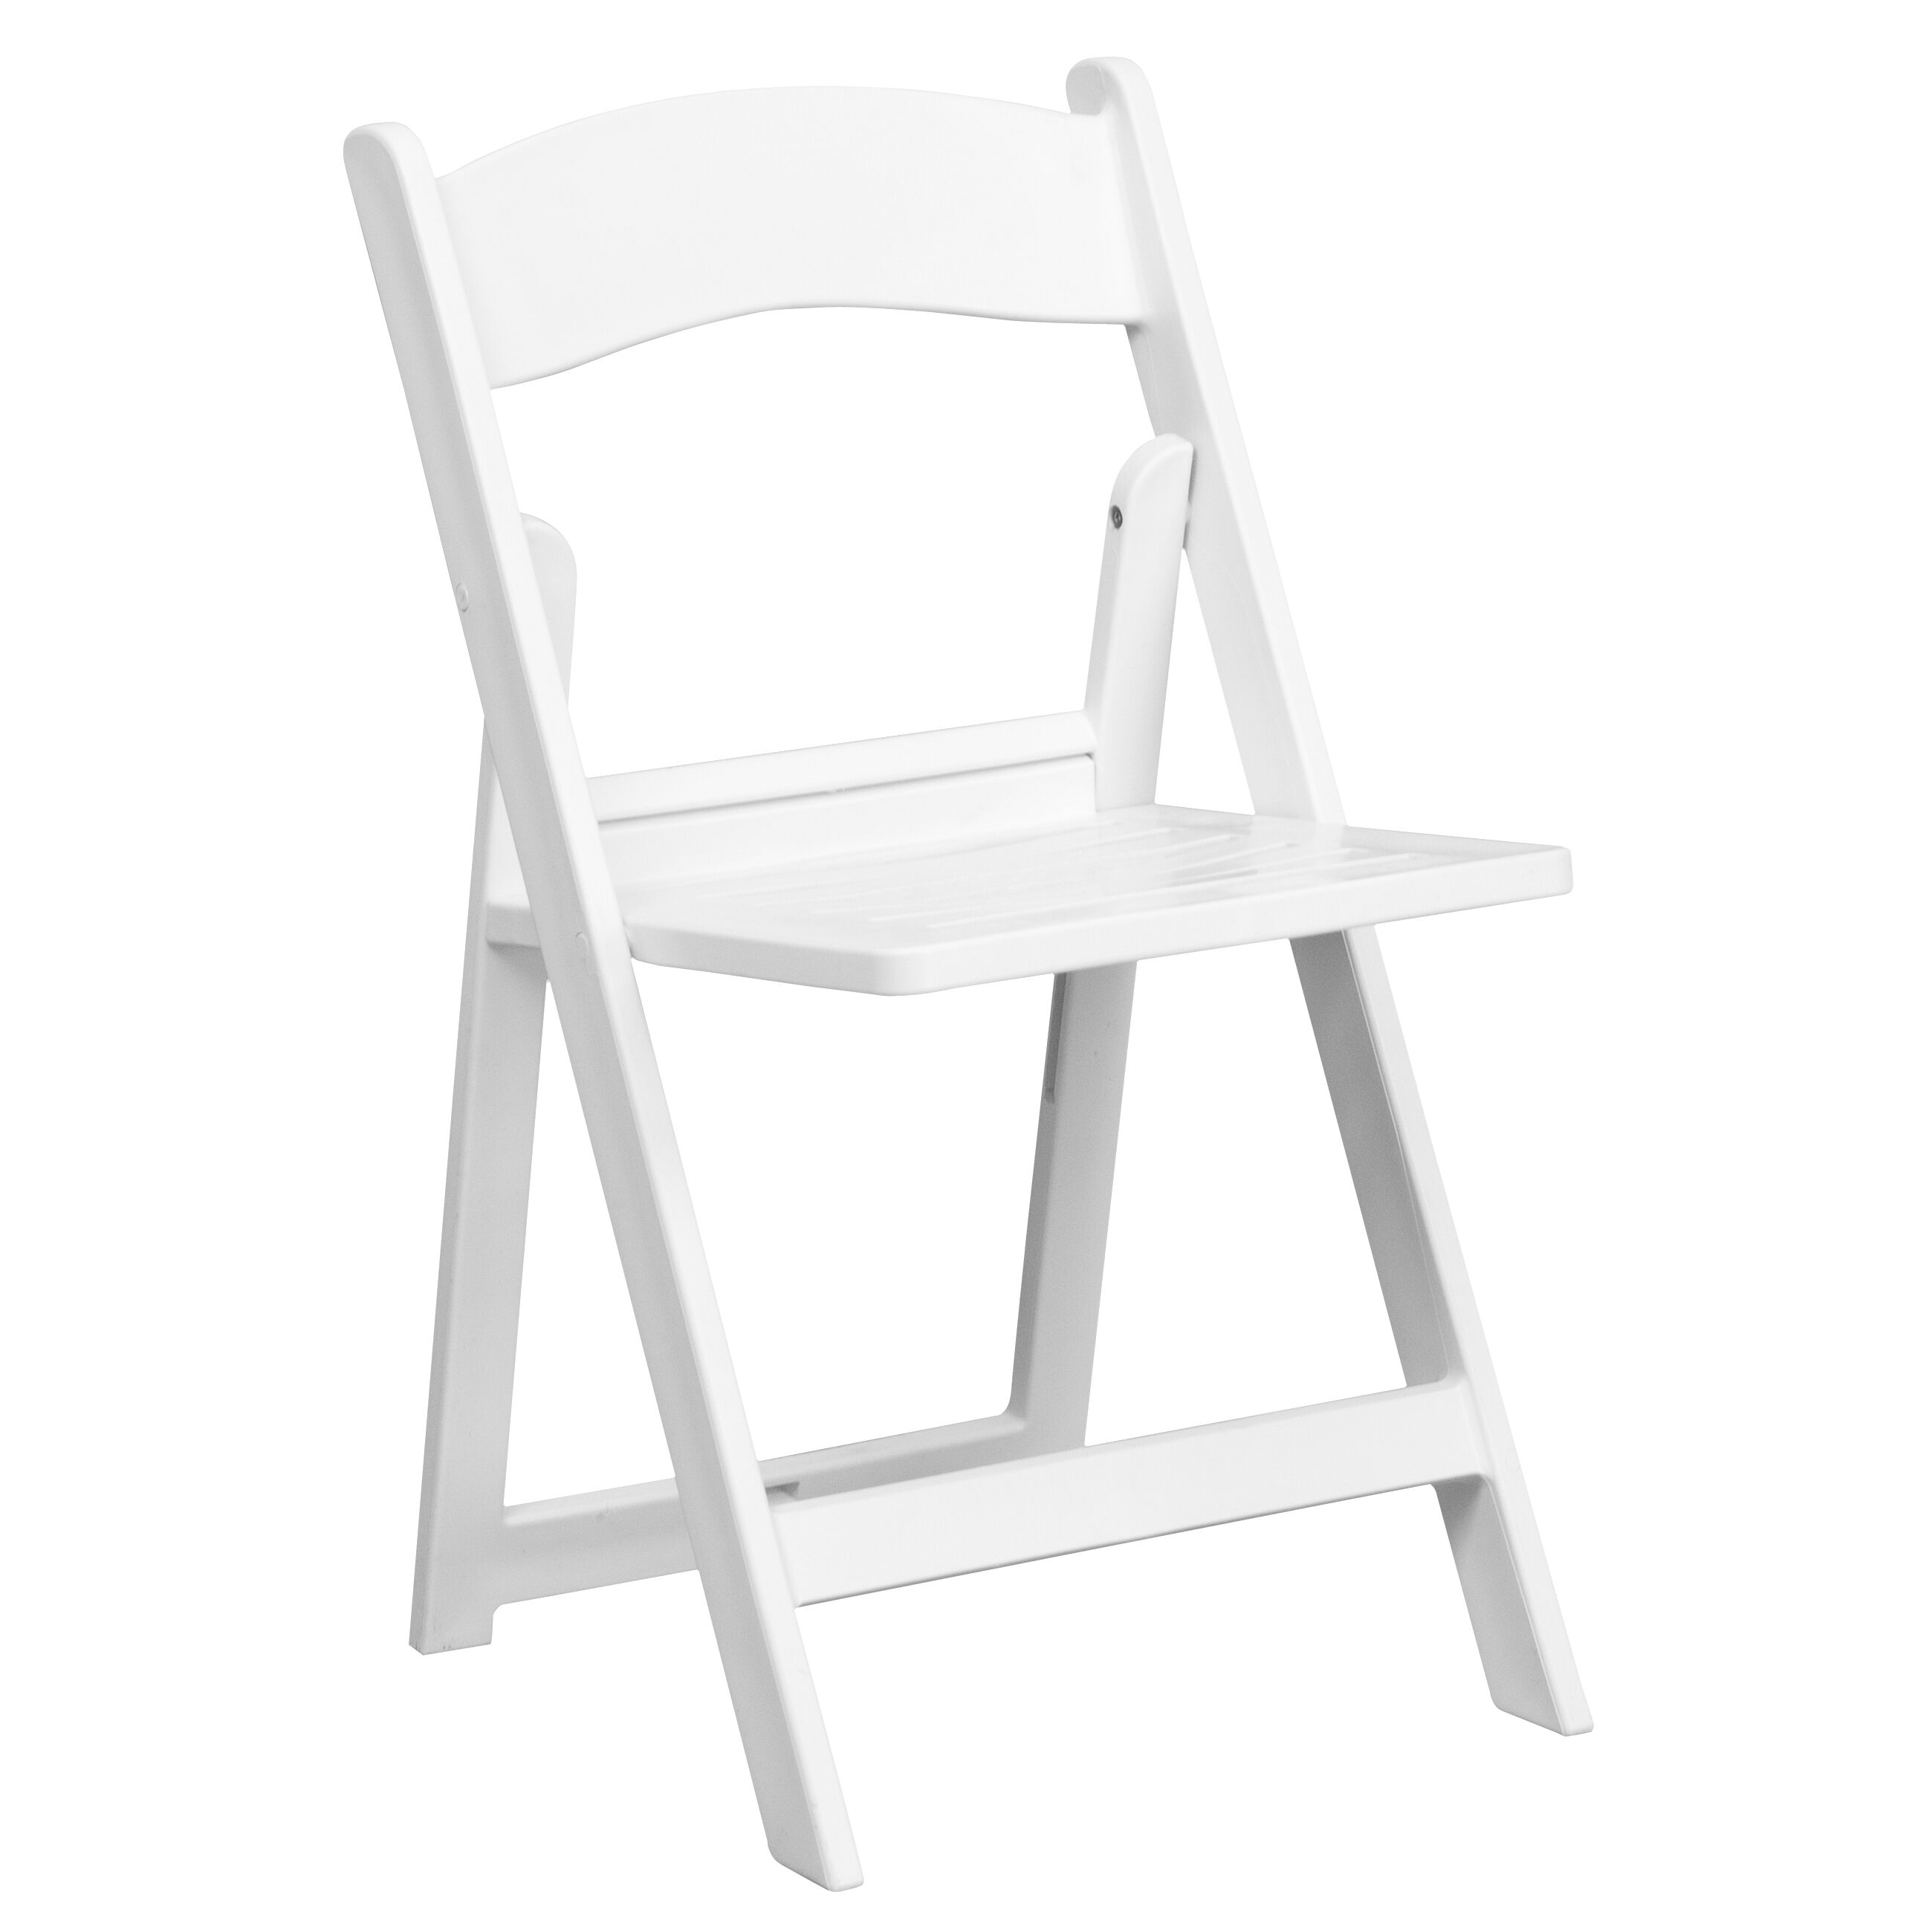 Capacity White Resin Folding Chair With Slatted Seat Is On ...